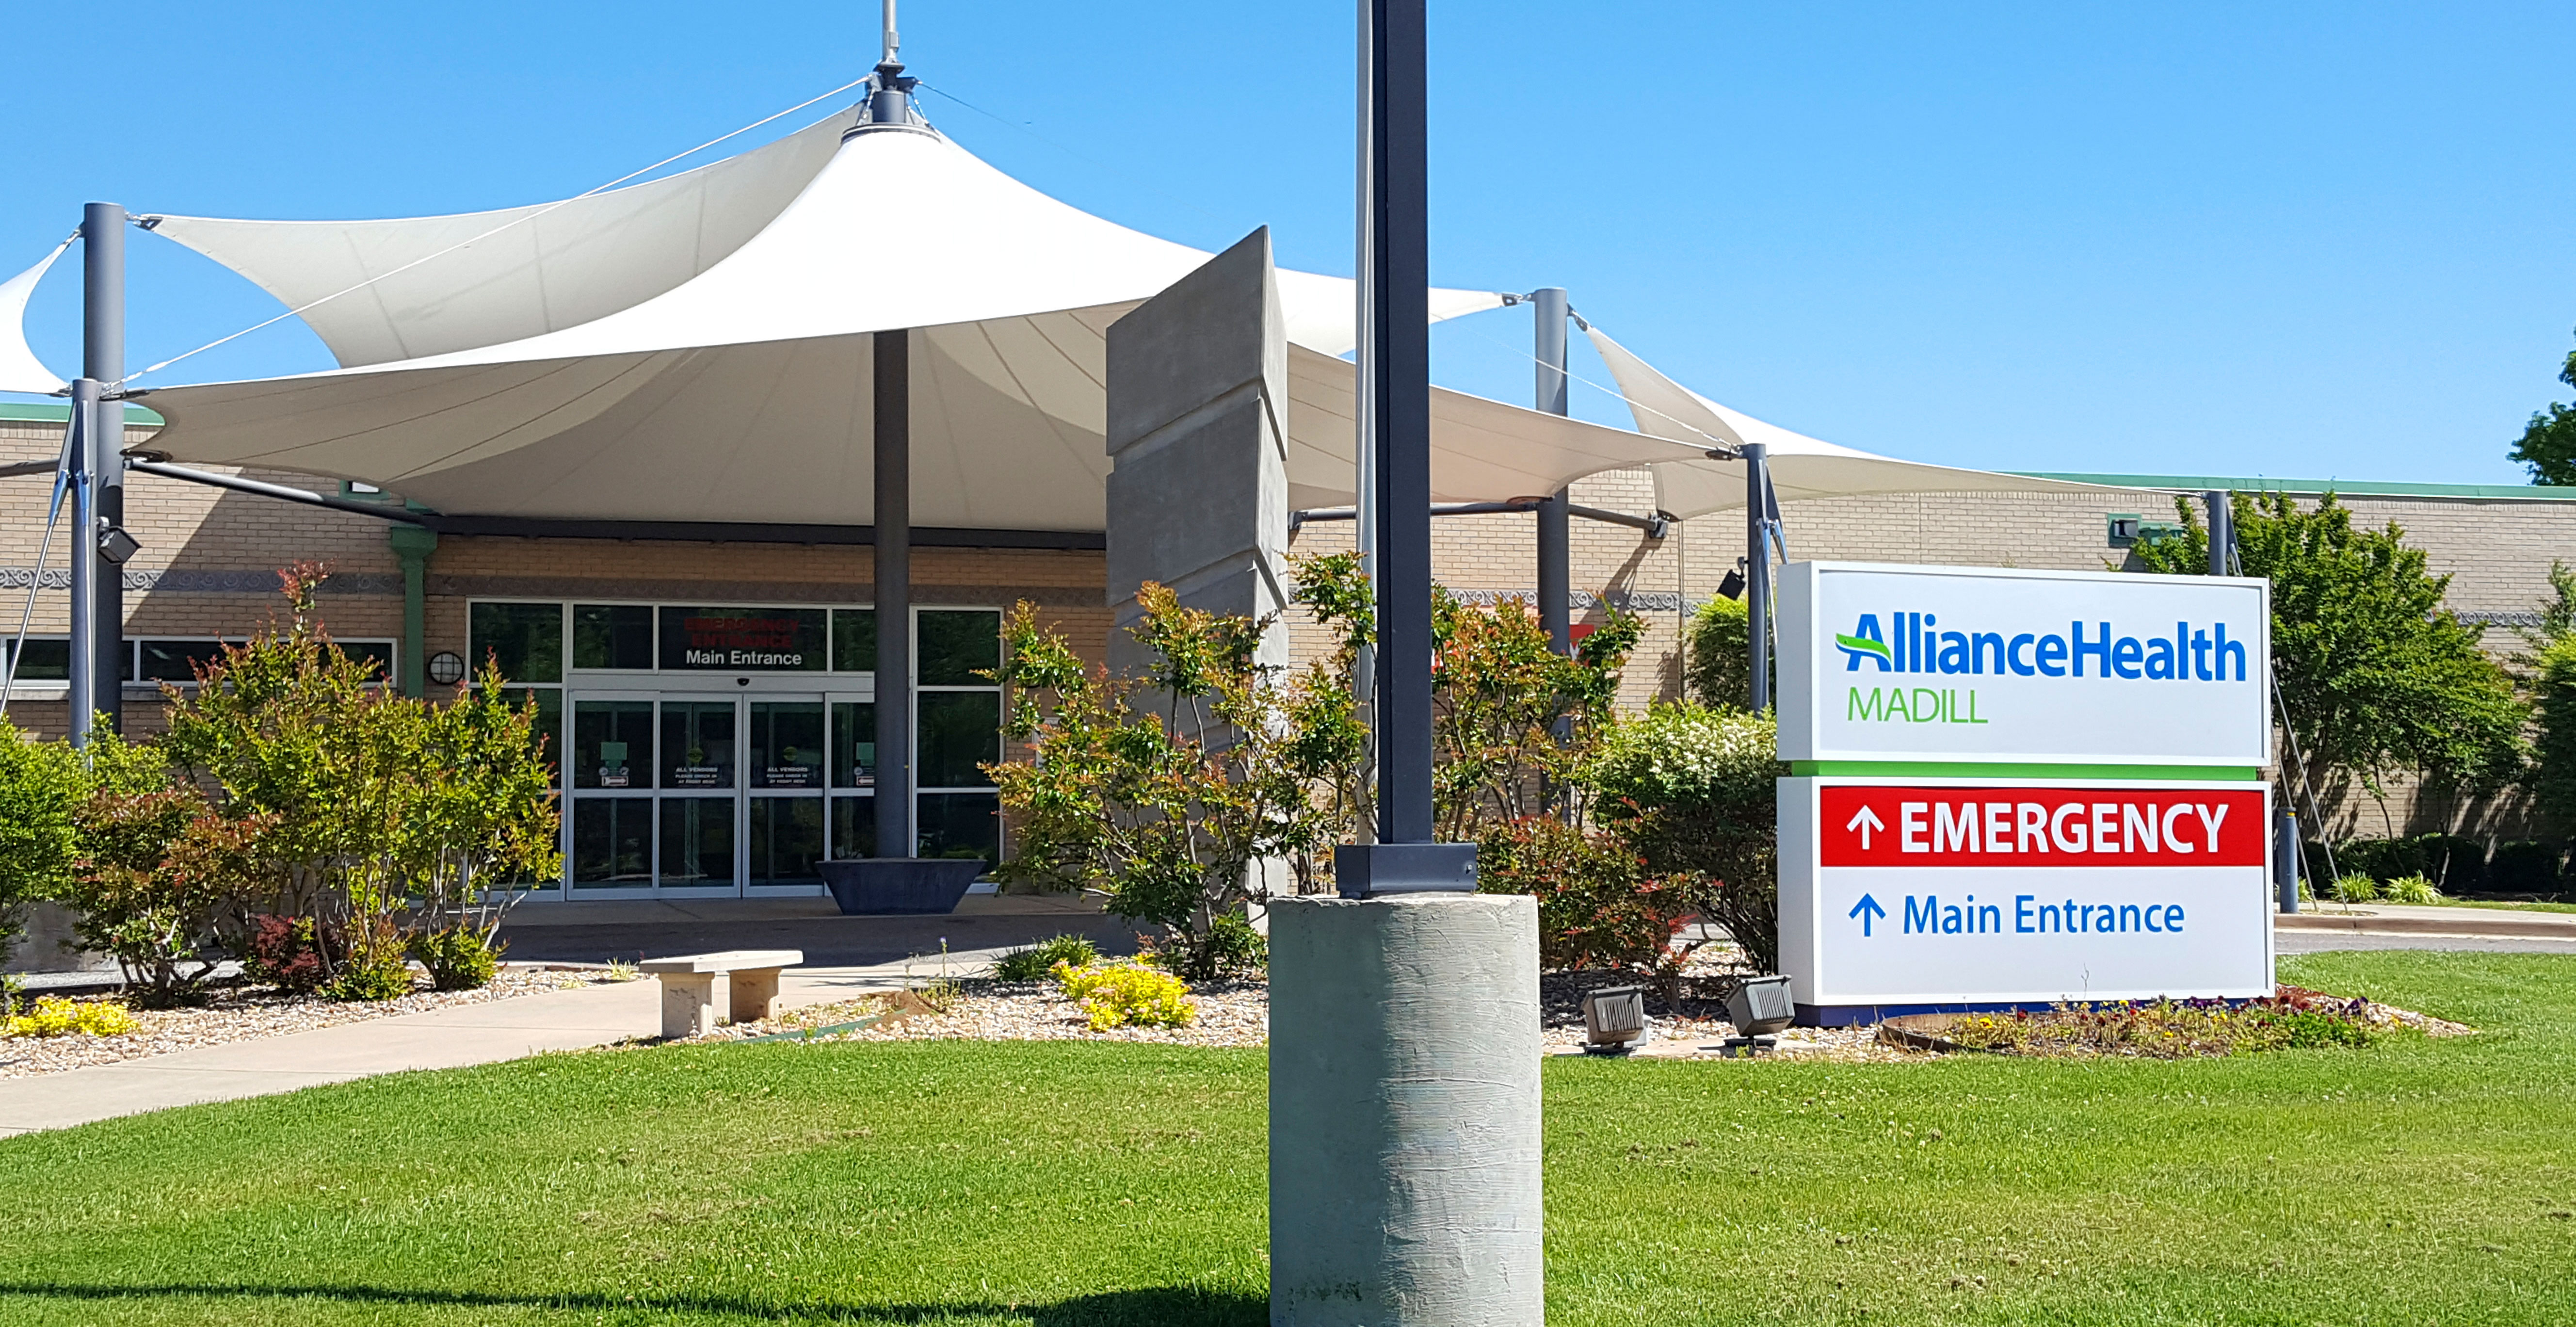 AllianceHealth Madill